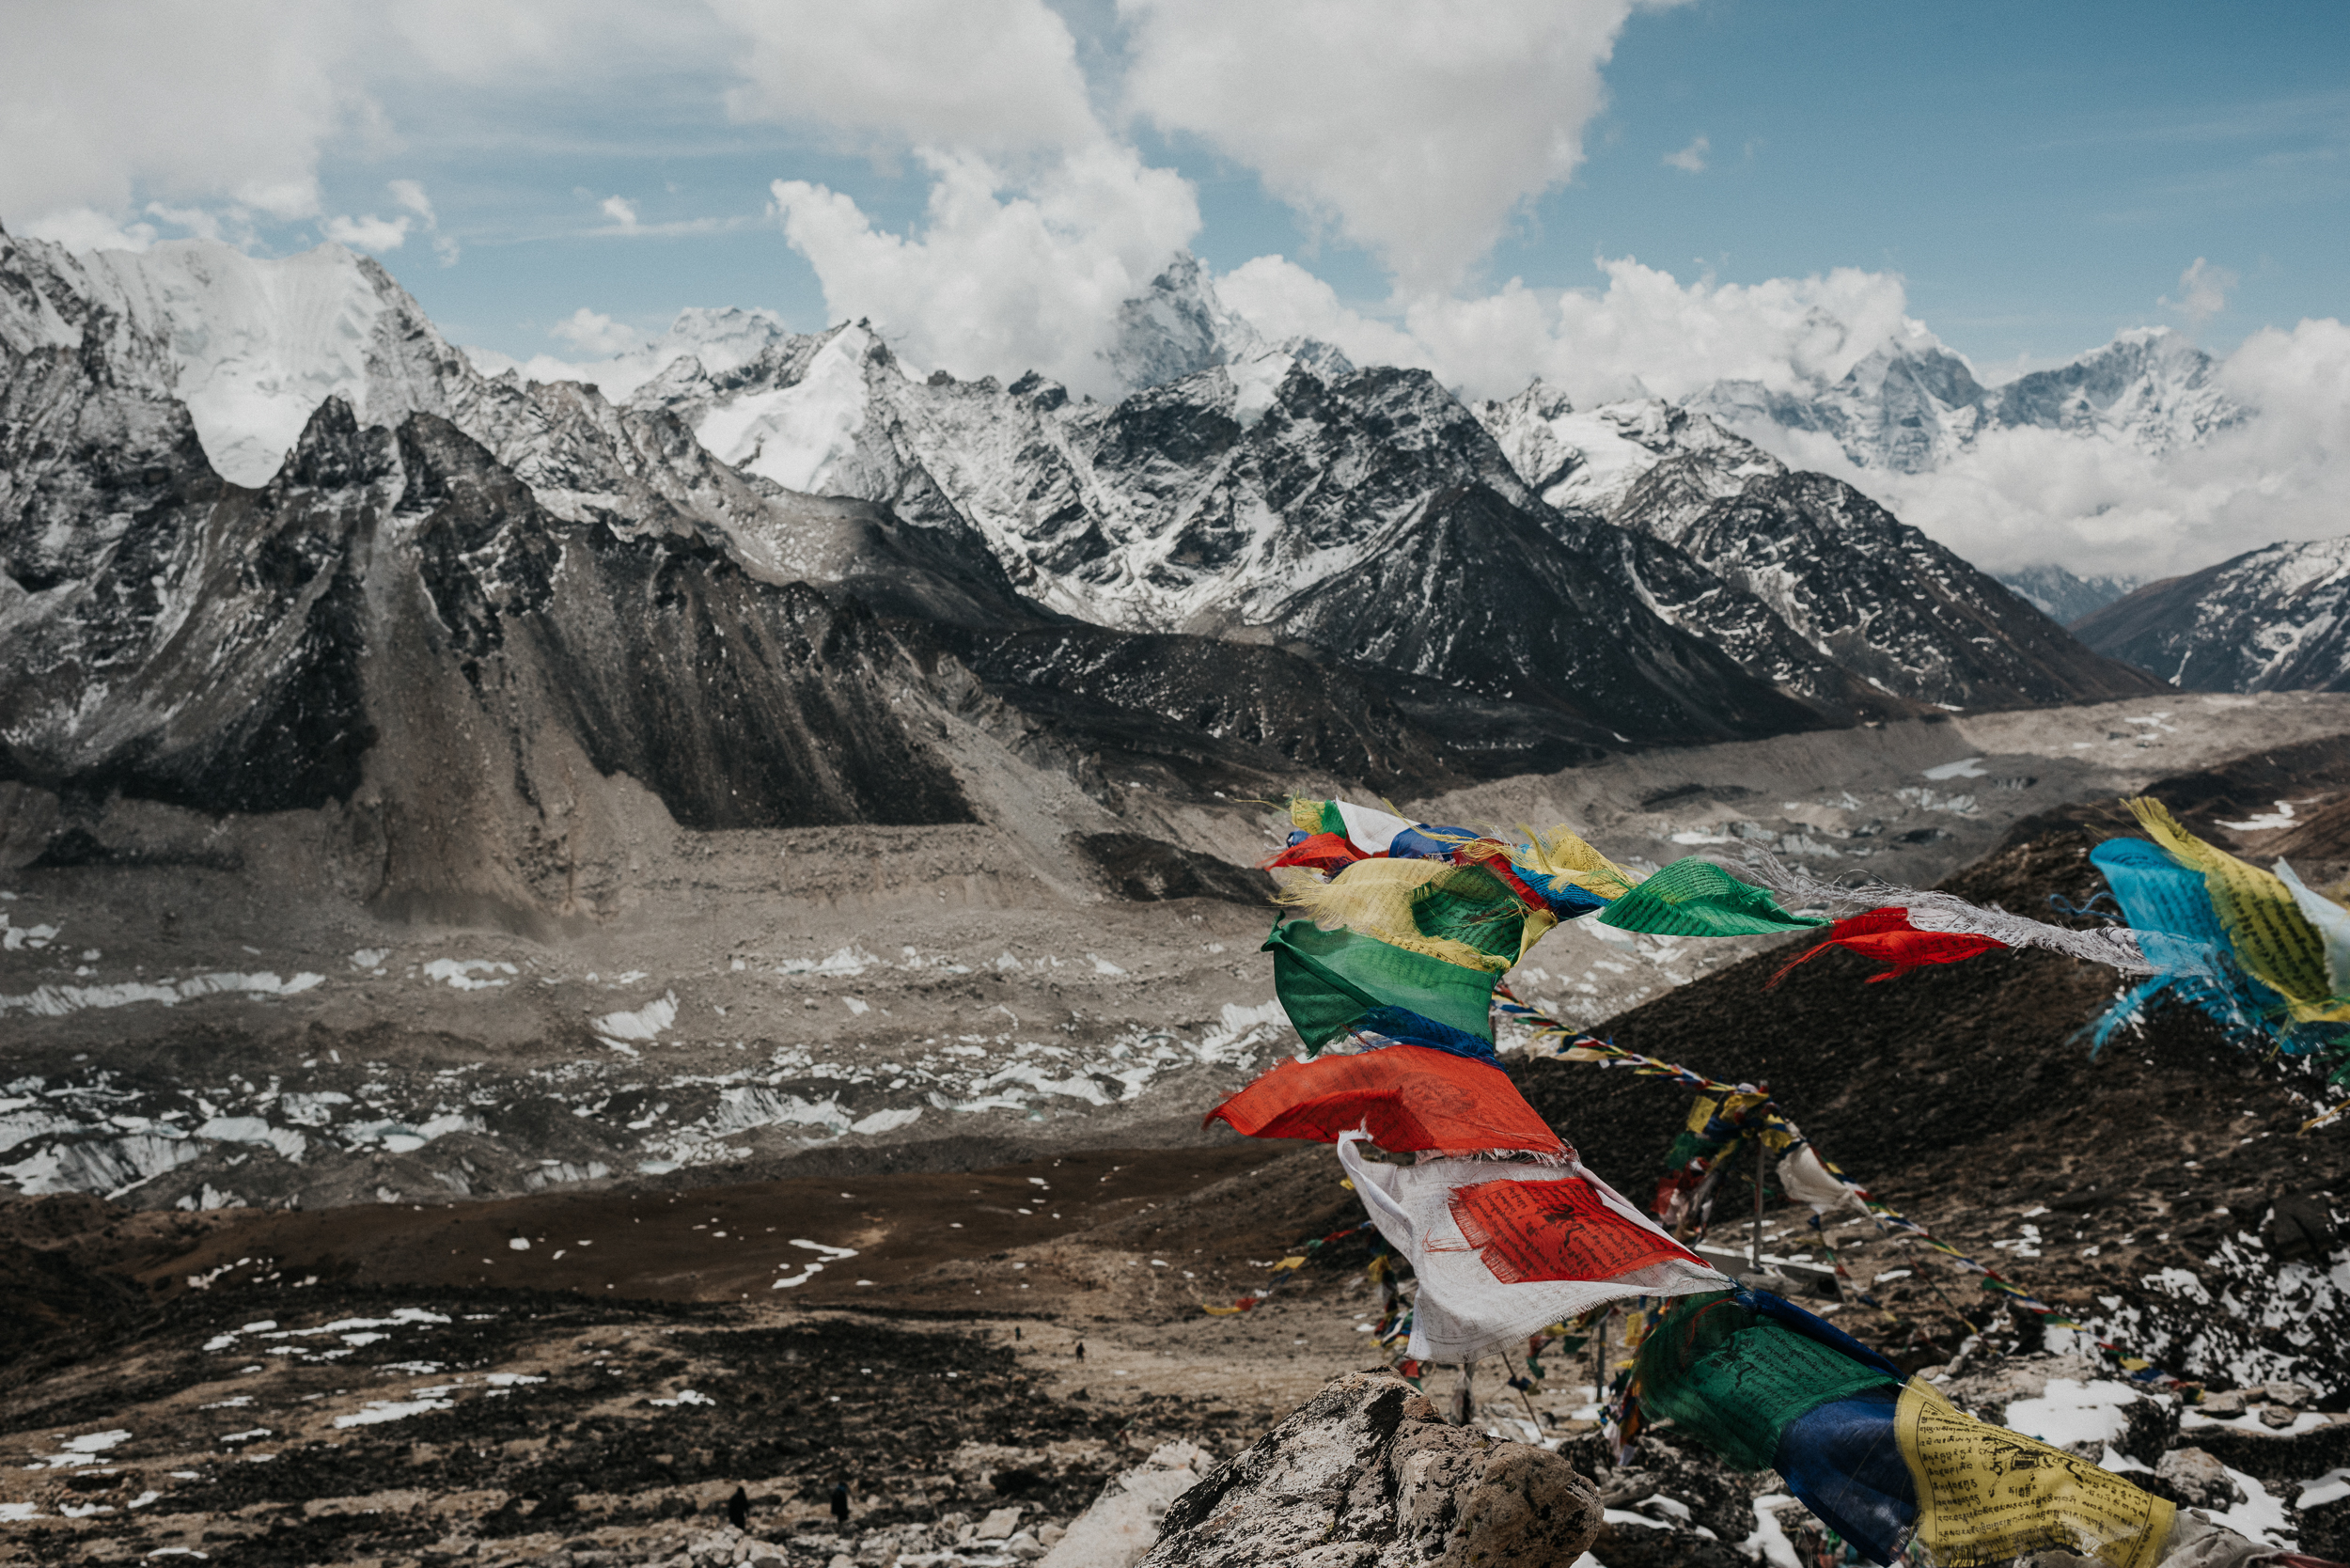 Nepal_EverestBaseCamp_2019_TaraShupe_Photography_DSC_4392.jpg